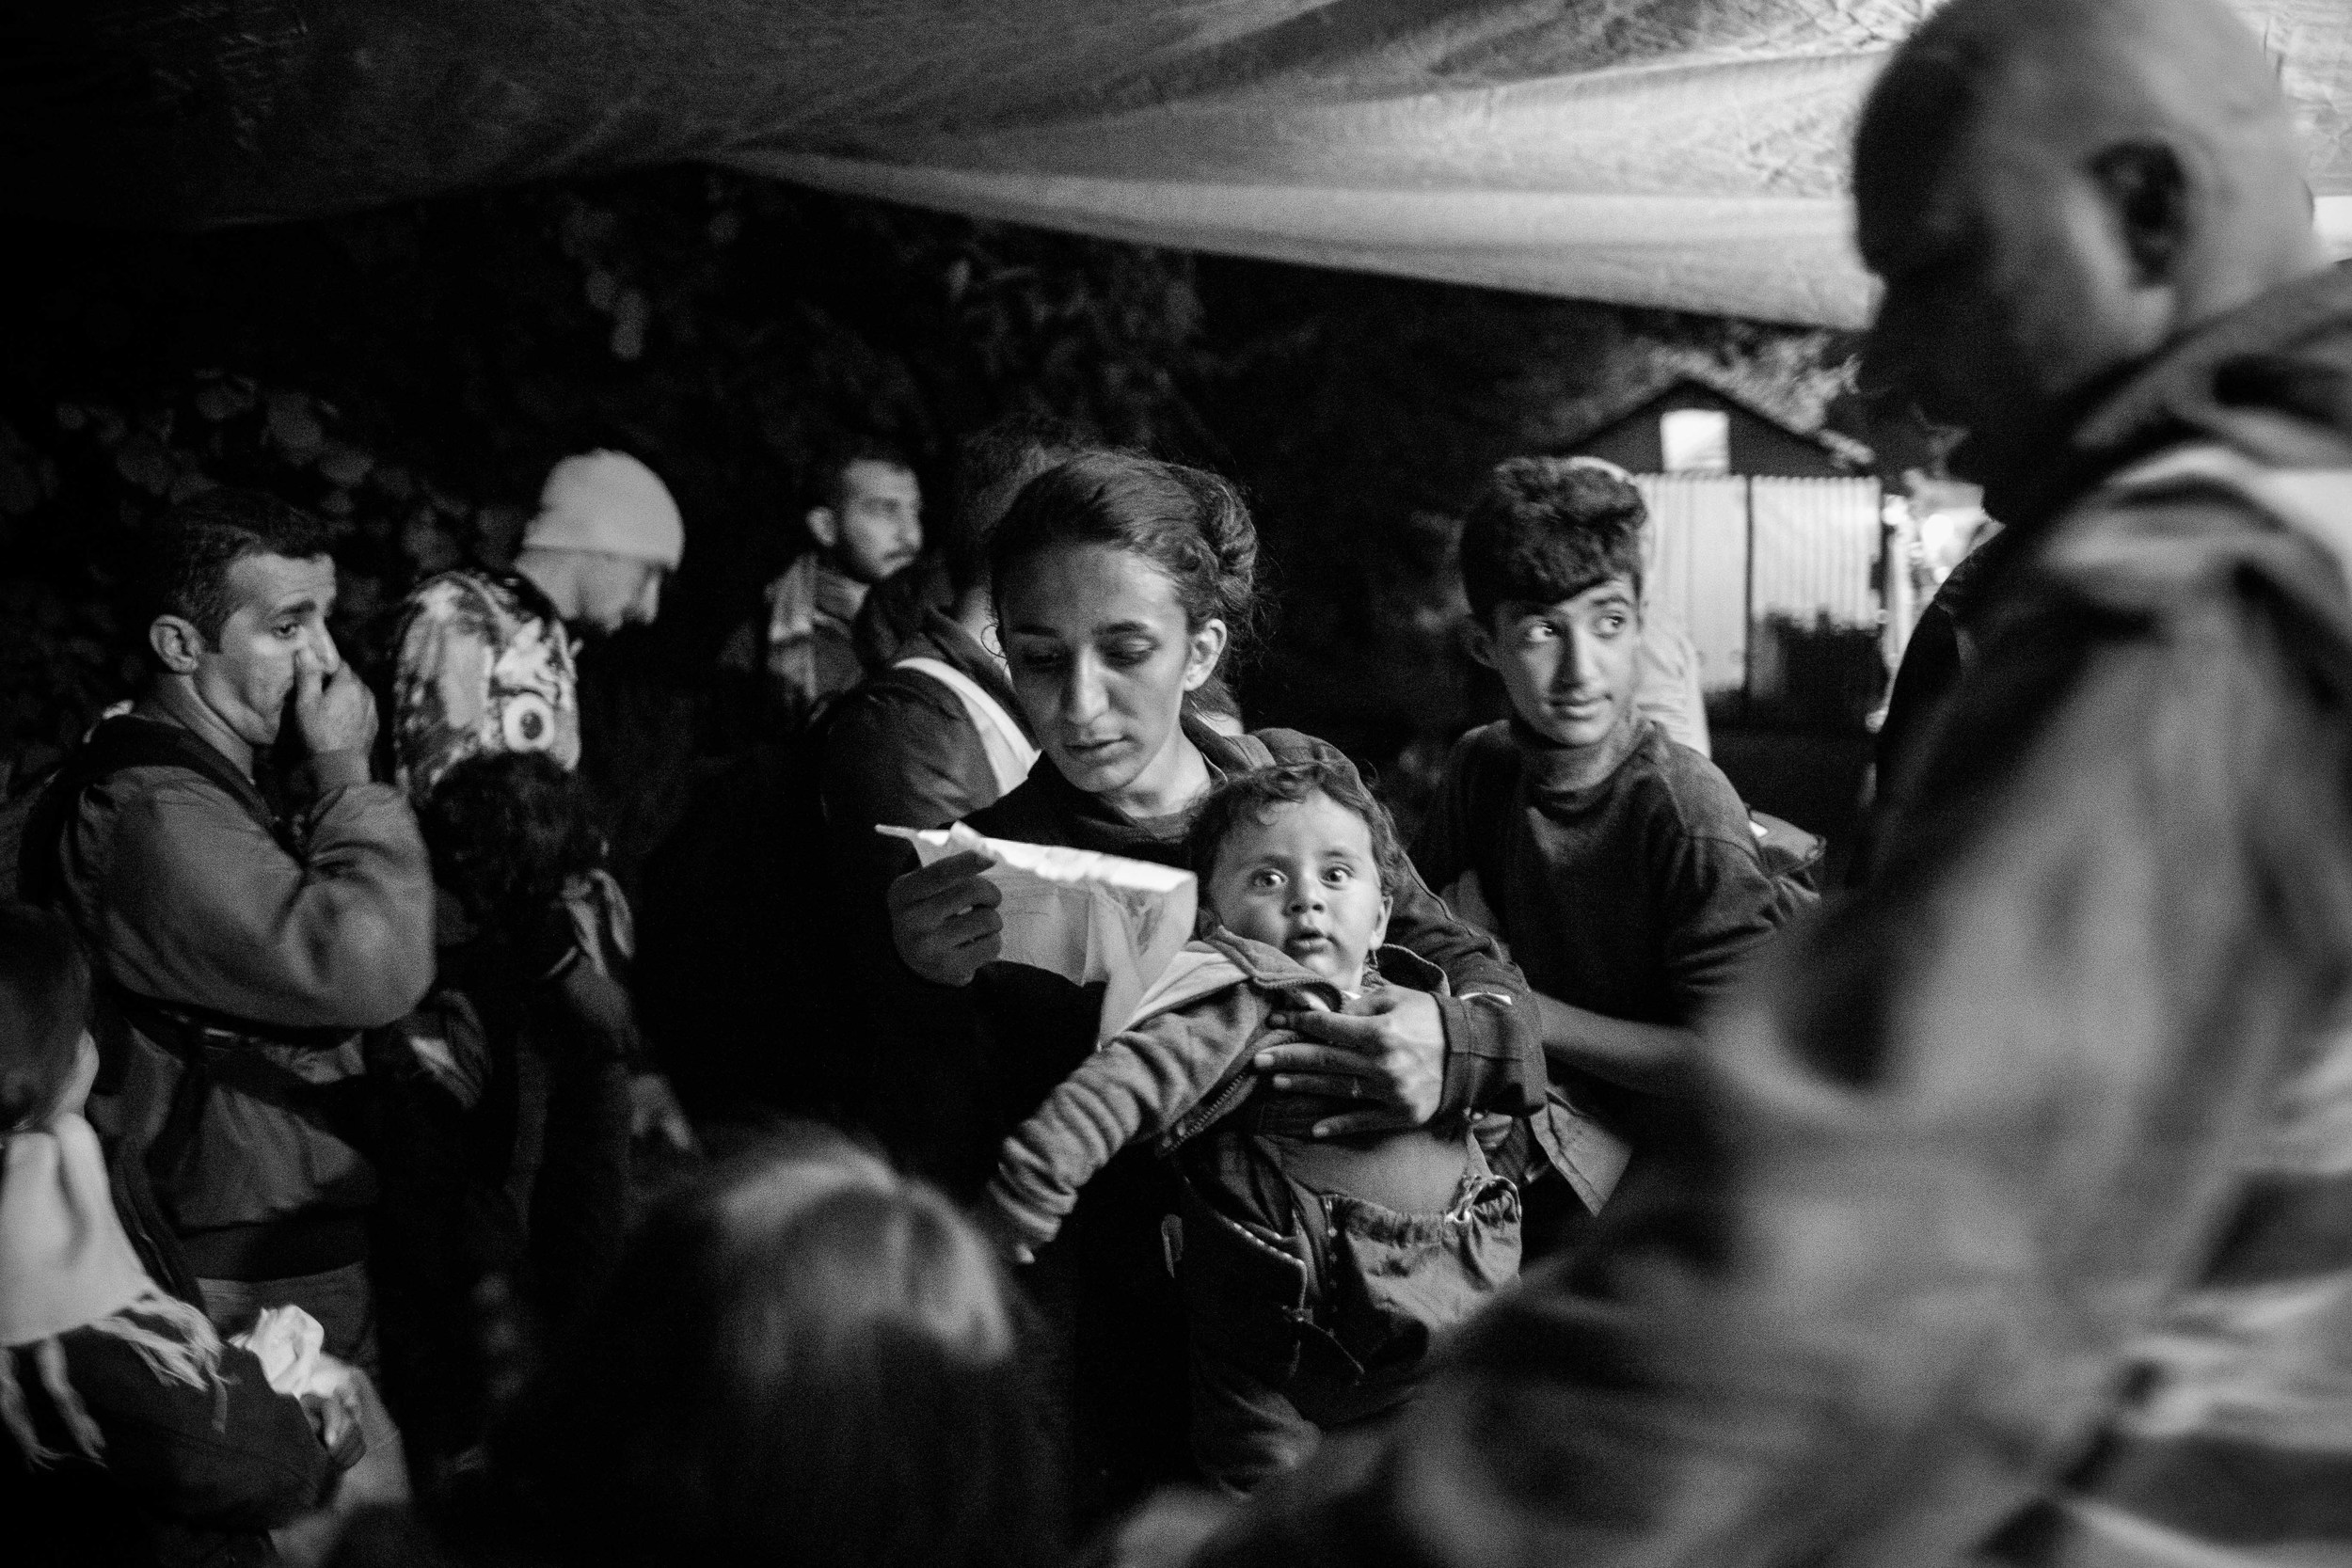 A young Syrian boy with his family about to cross over from Serbia to Croatia in the dead of night.